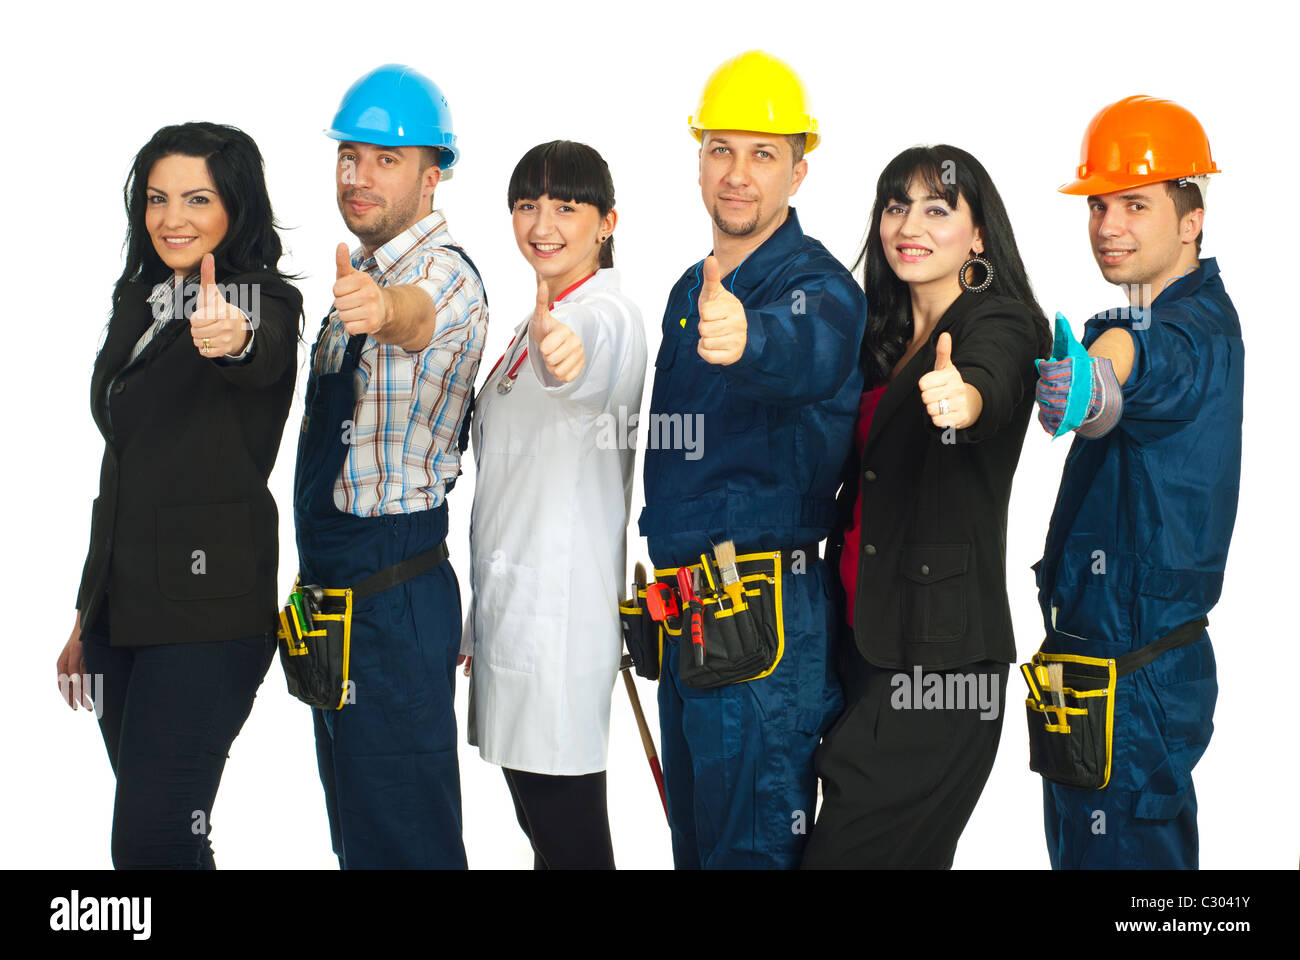 Successful six people with different careers giving thumbs up and standing in a line isolated on white background - Stock Image